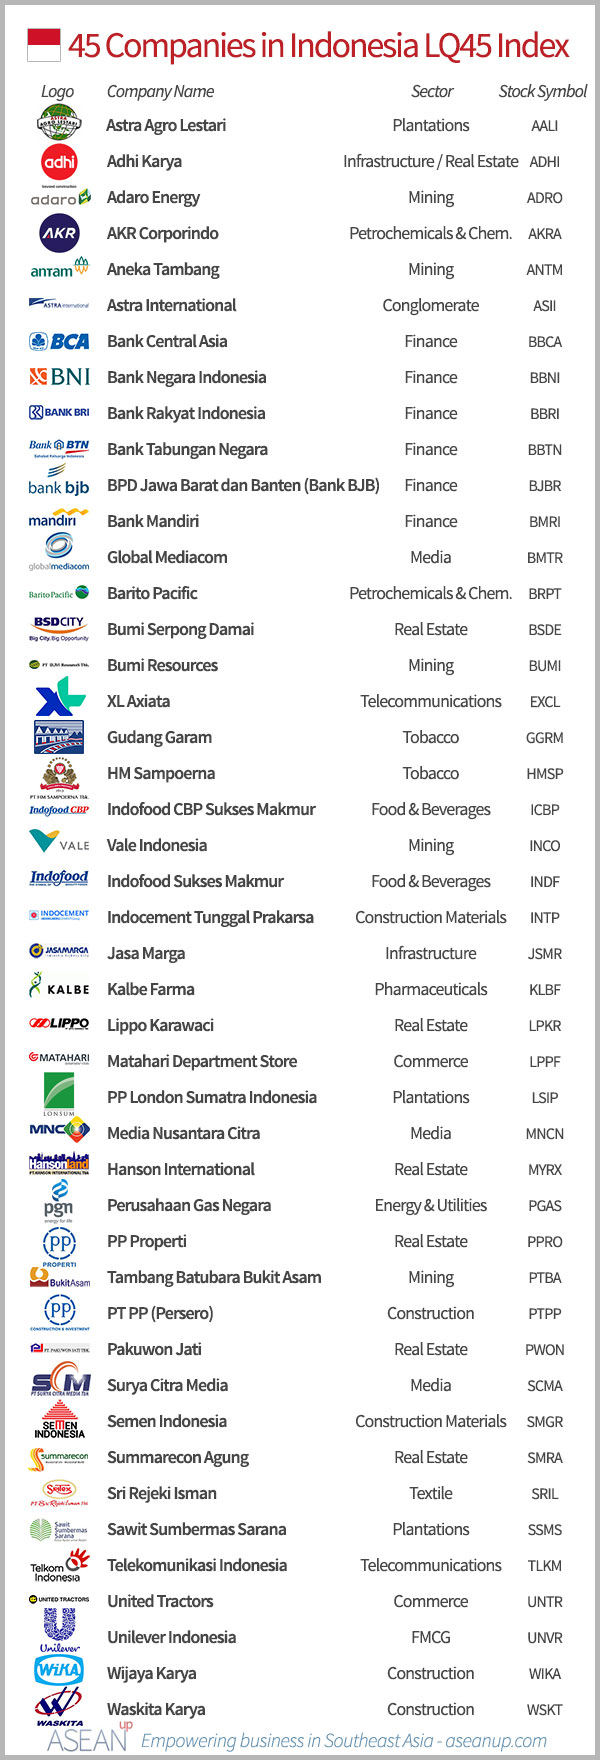 List of the 45 Indonesian companies in the LQ45 index, with logo, sector and stock symbol